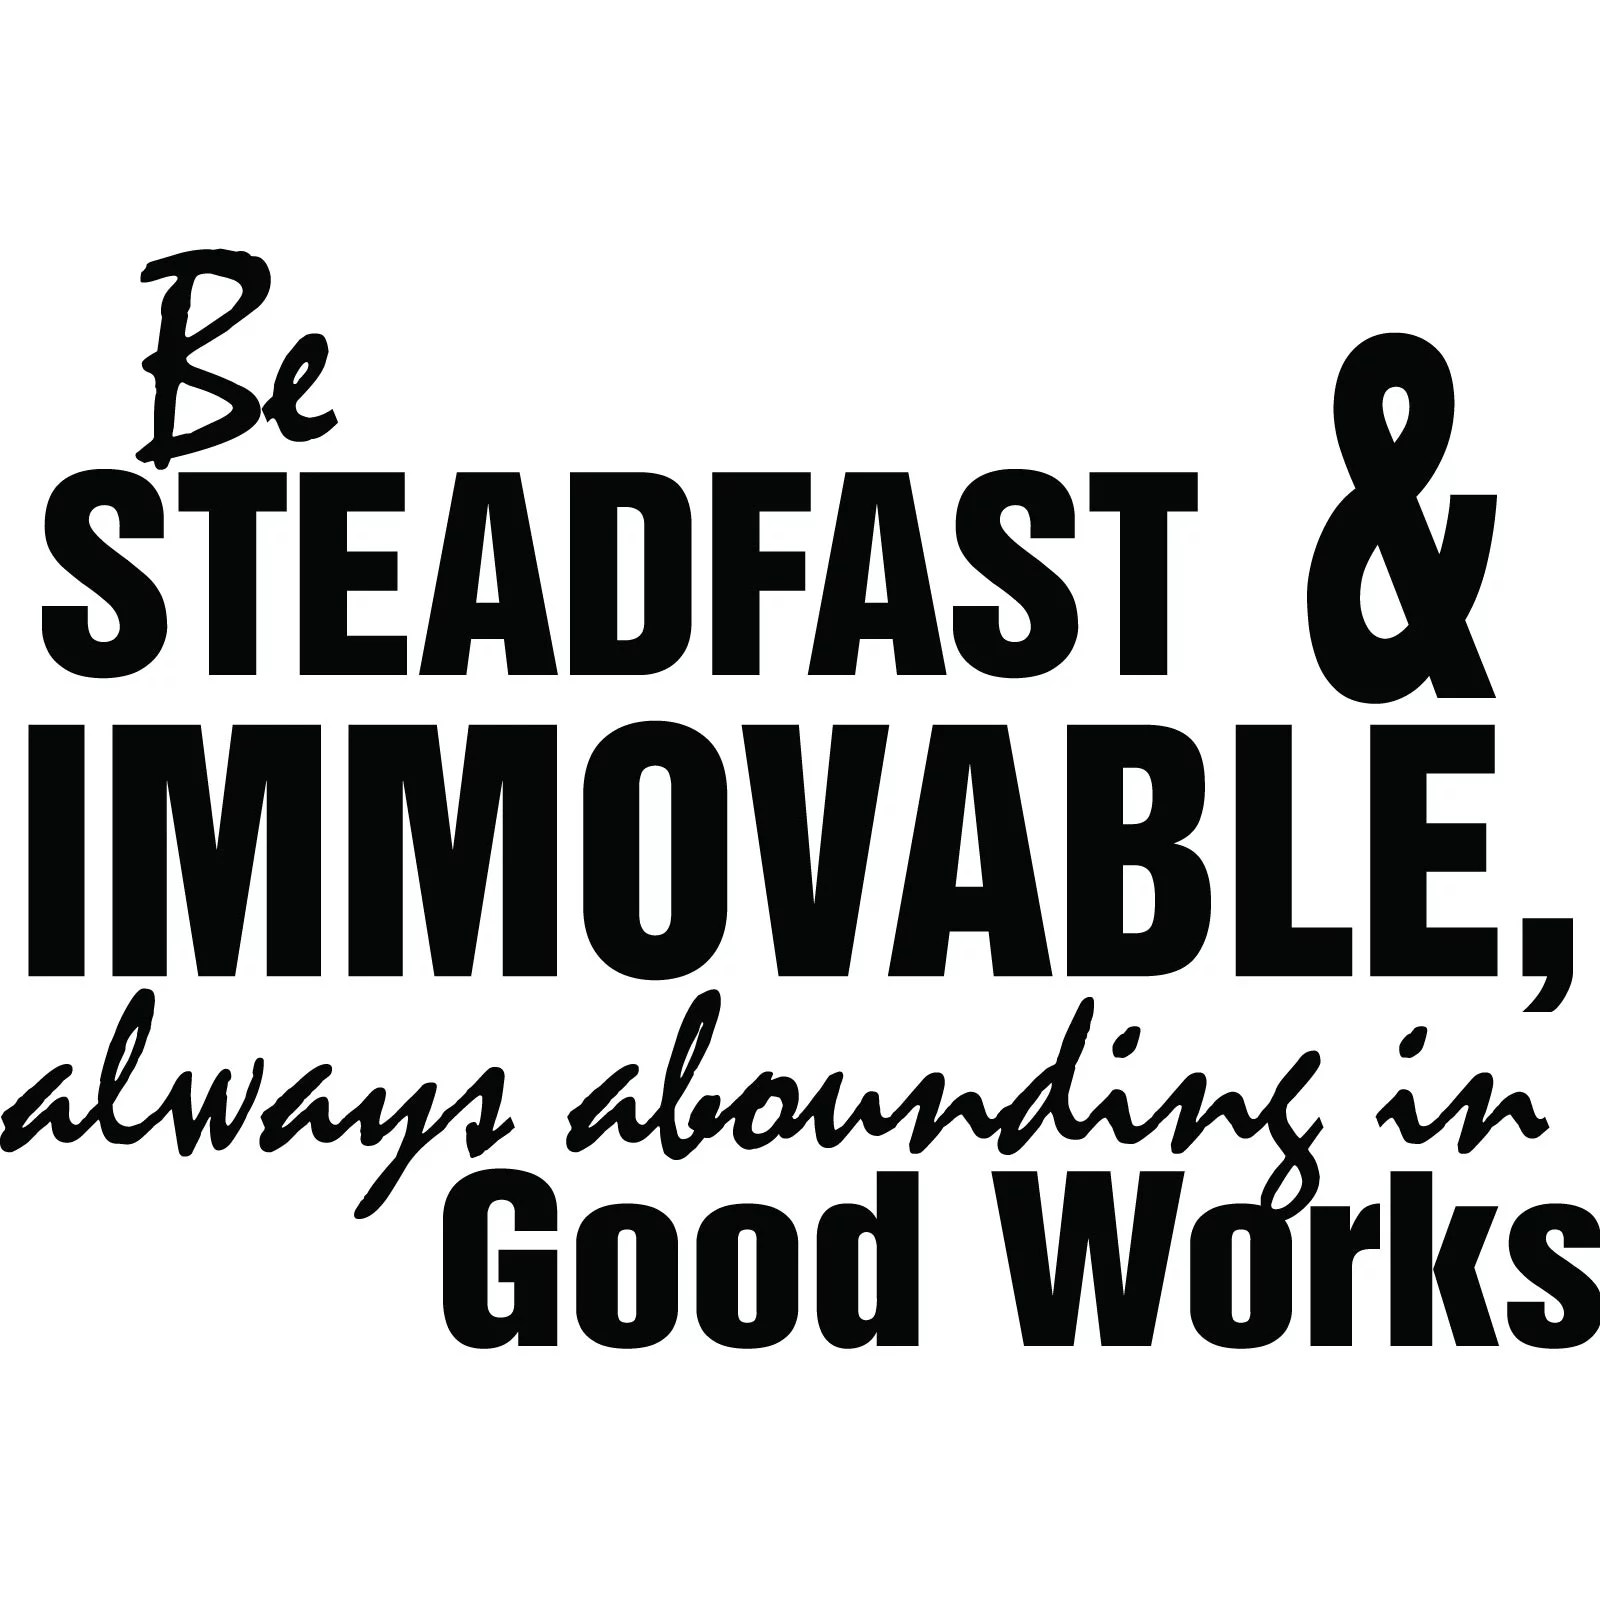 Be Steadfast And Immovable Good Works Quote Wall Sticker